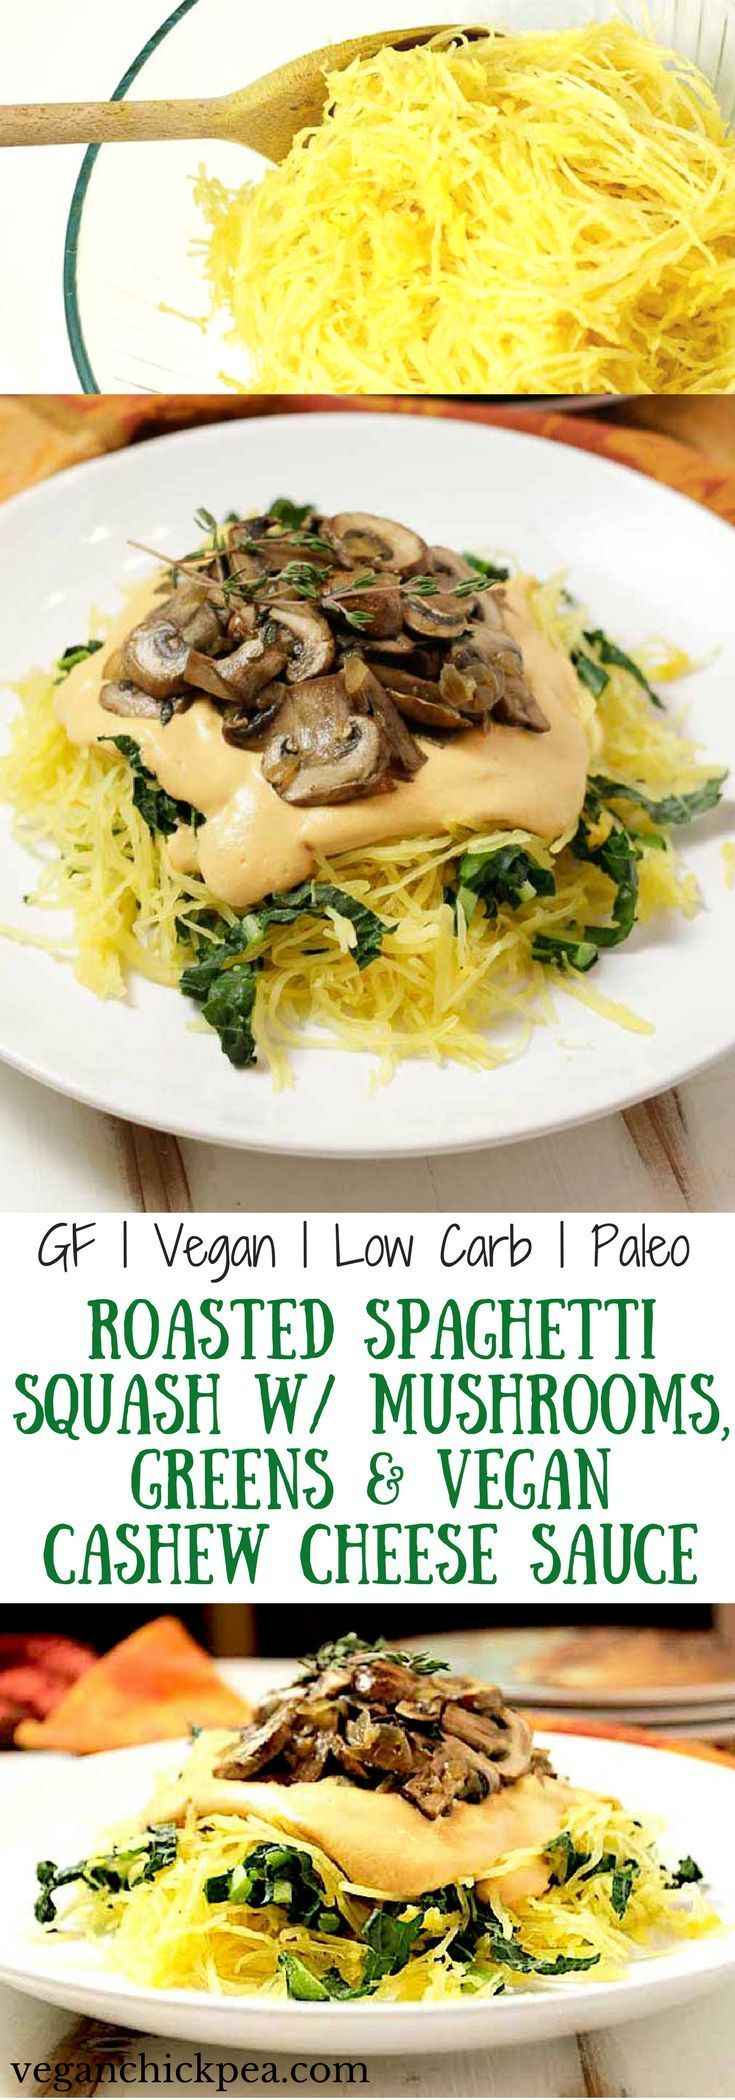 Roasted spaghetti squash is the perfect healthy, low carb, satisfying meal for Fall. Pair it with a creamy vegan cashew cheese sauce, superfood stars mushrooms and kale or spinach, and you've got a vegan, gluten free and paleo meal that you'll want to enjoy again and again!